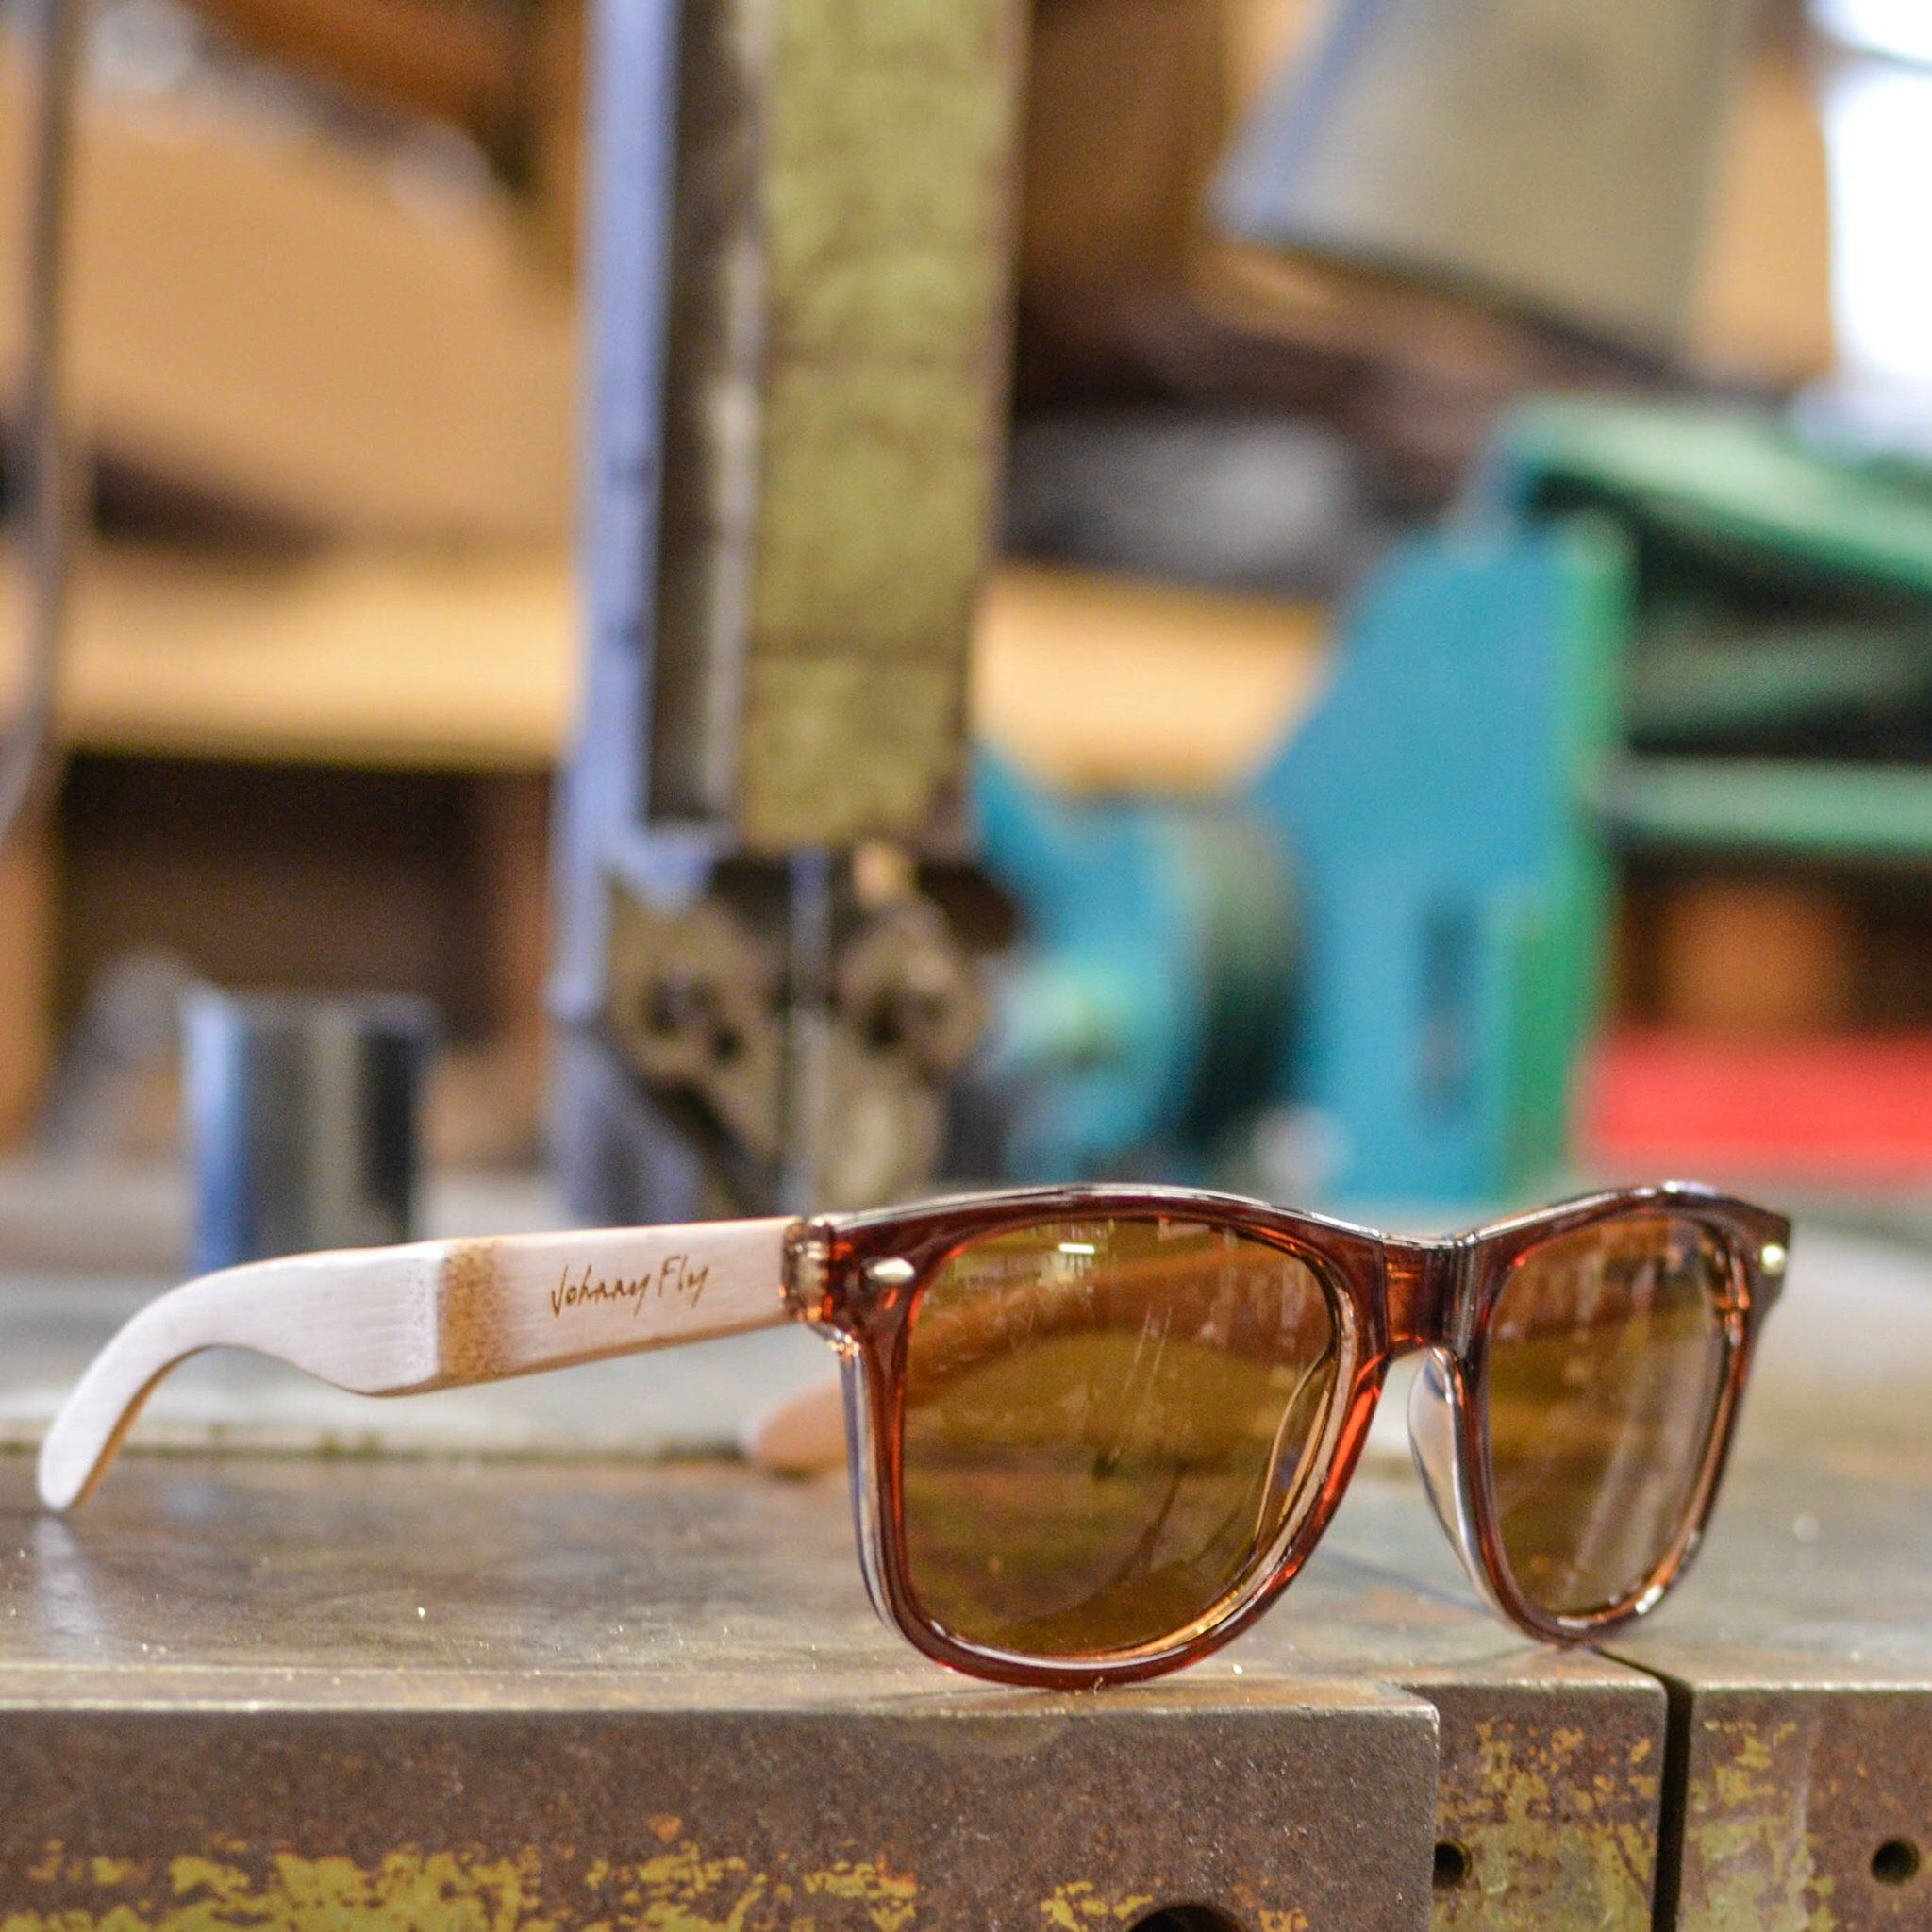 d11d6dbfe25d Fancy - RetroFLY Bamboo Sunglasses by Johnny Fly